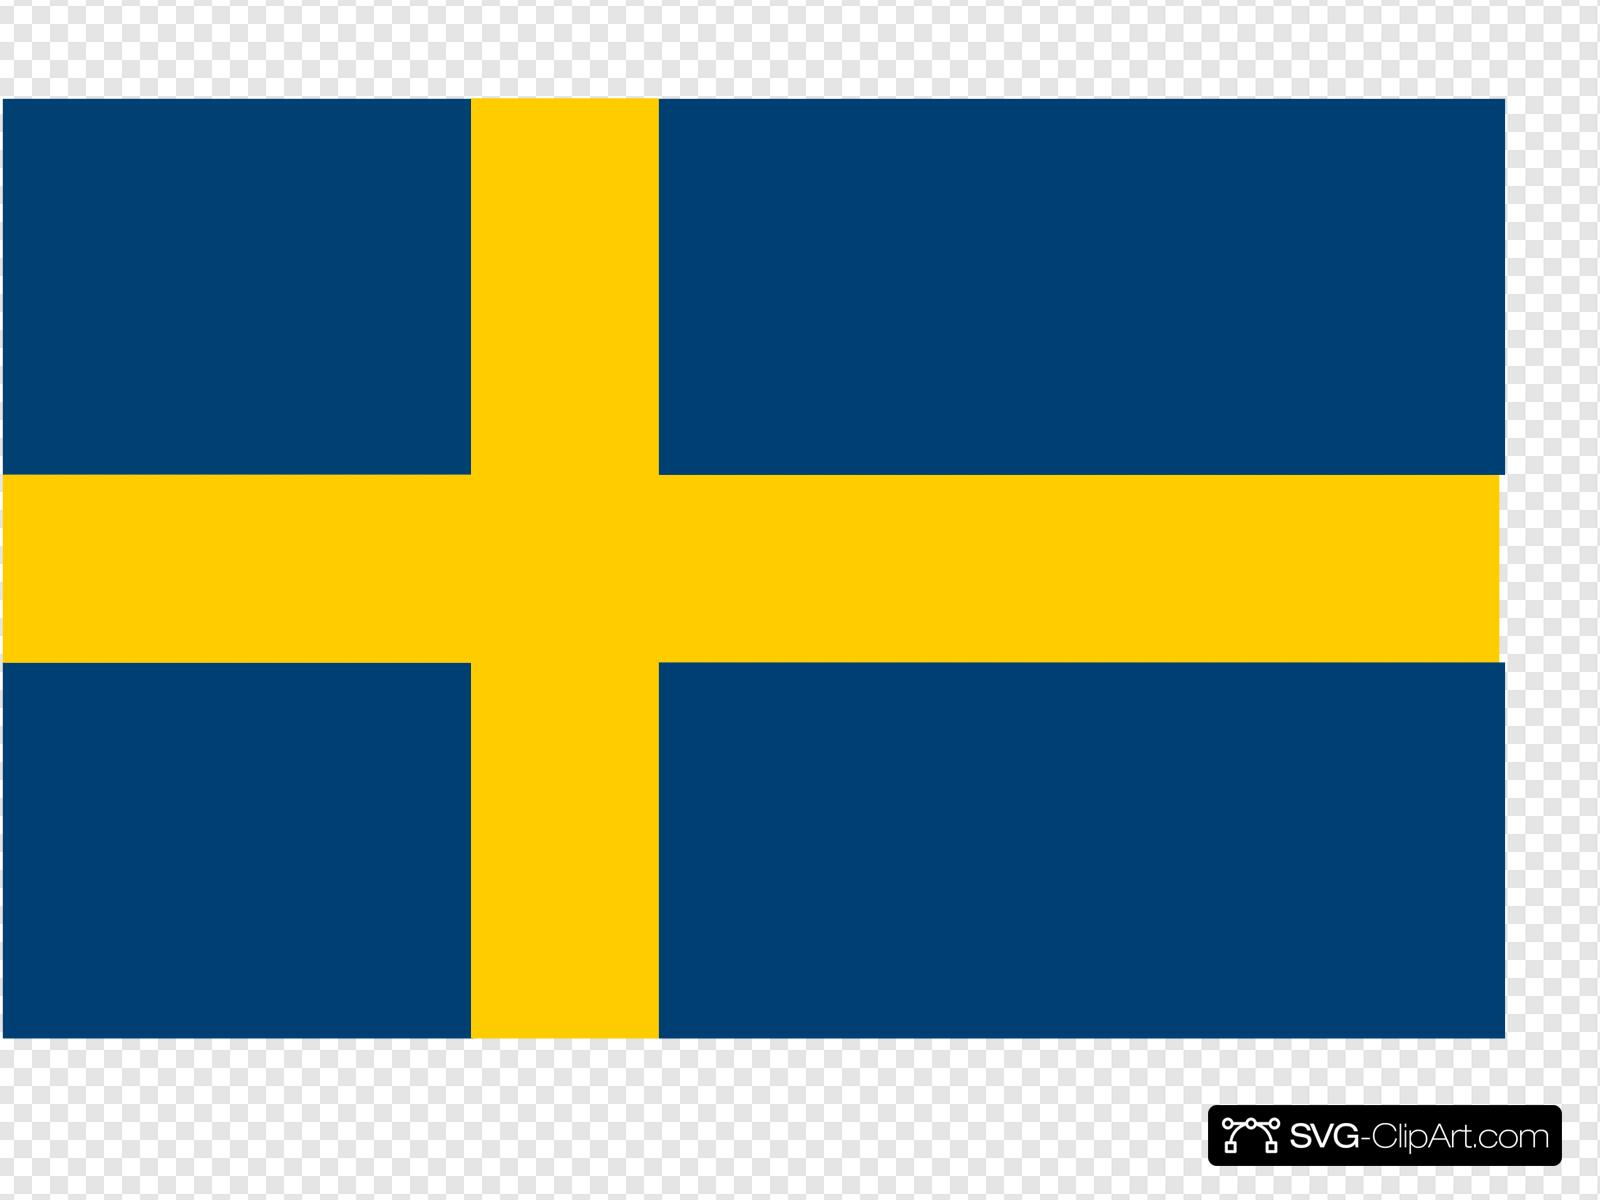 Clipart swedan picture free download Sweden Clip art, Icon and SVG - SVG Clipart picture free download